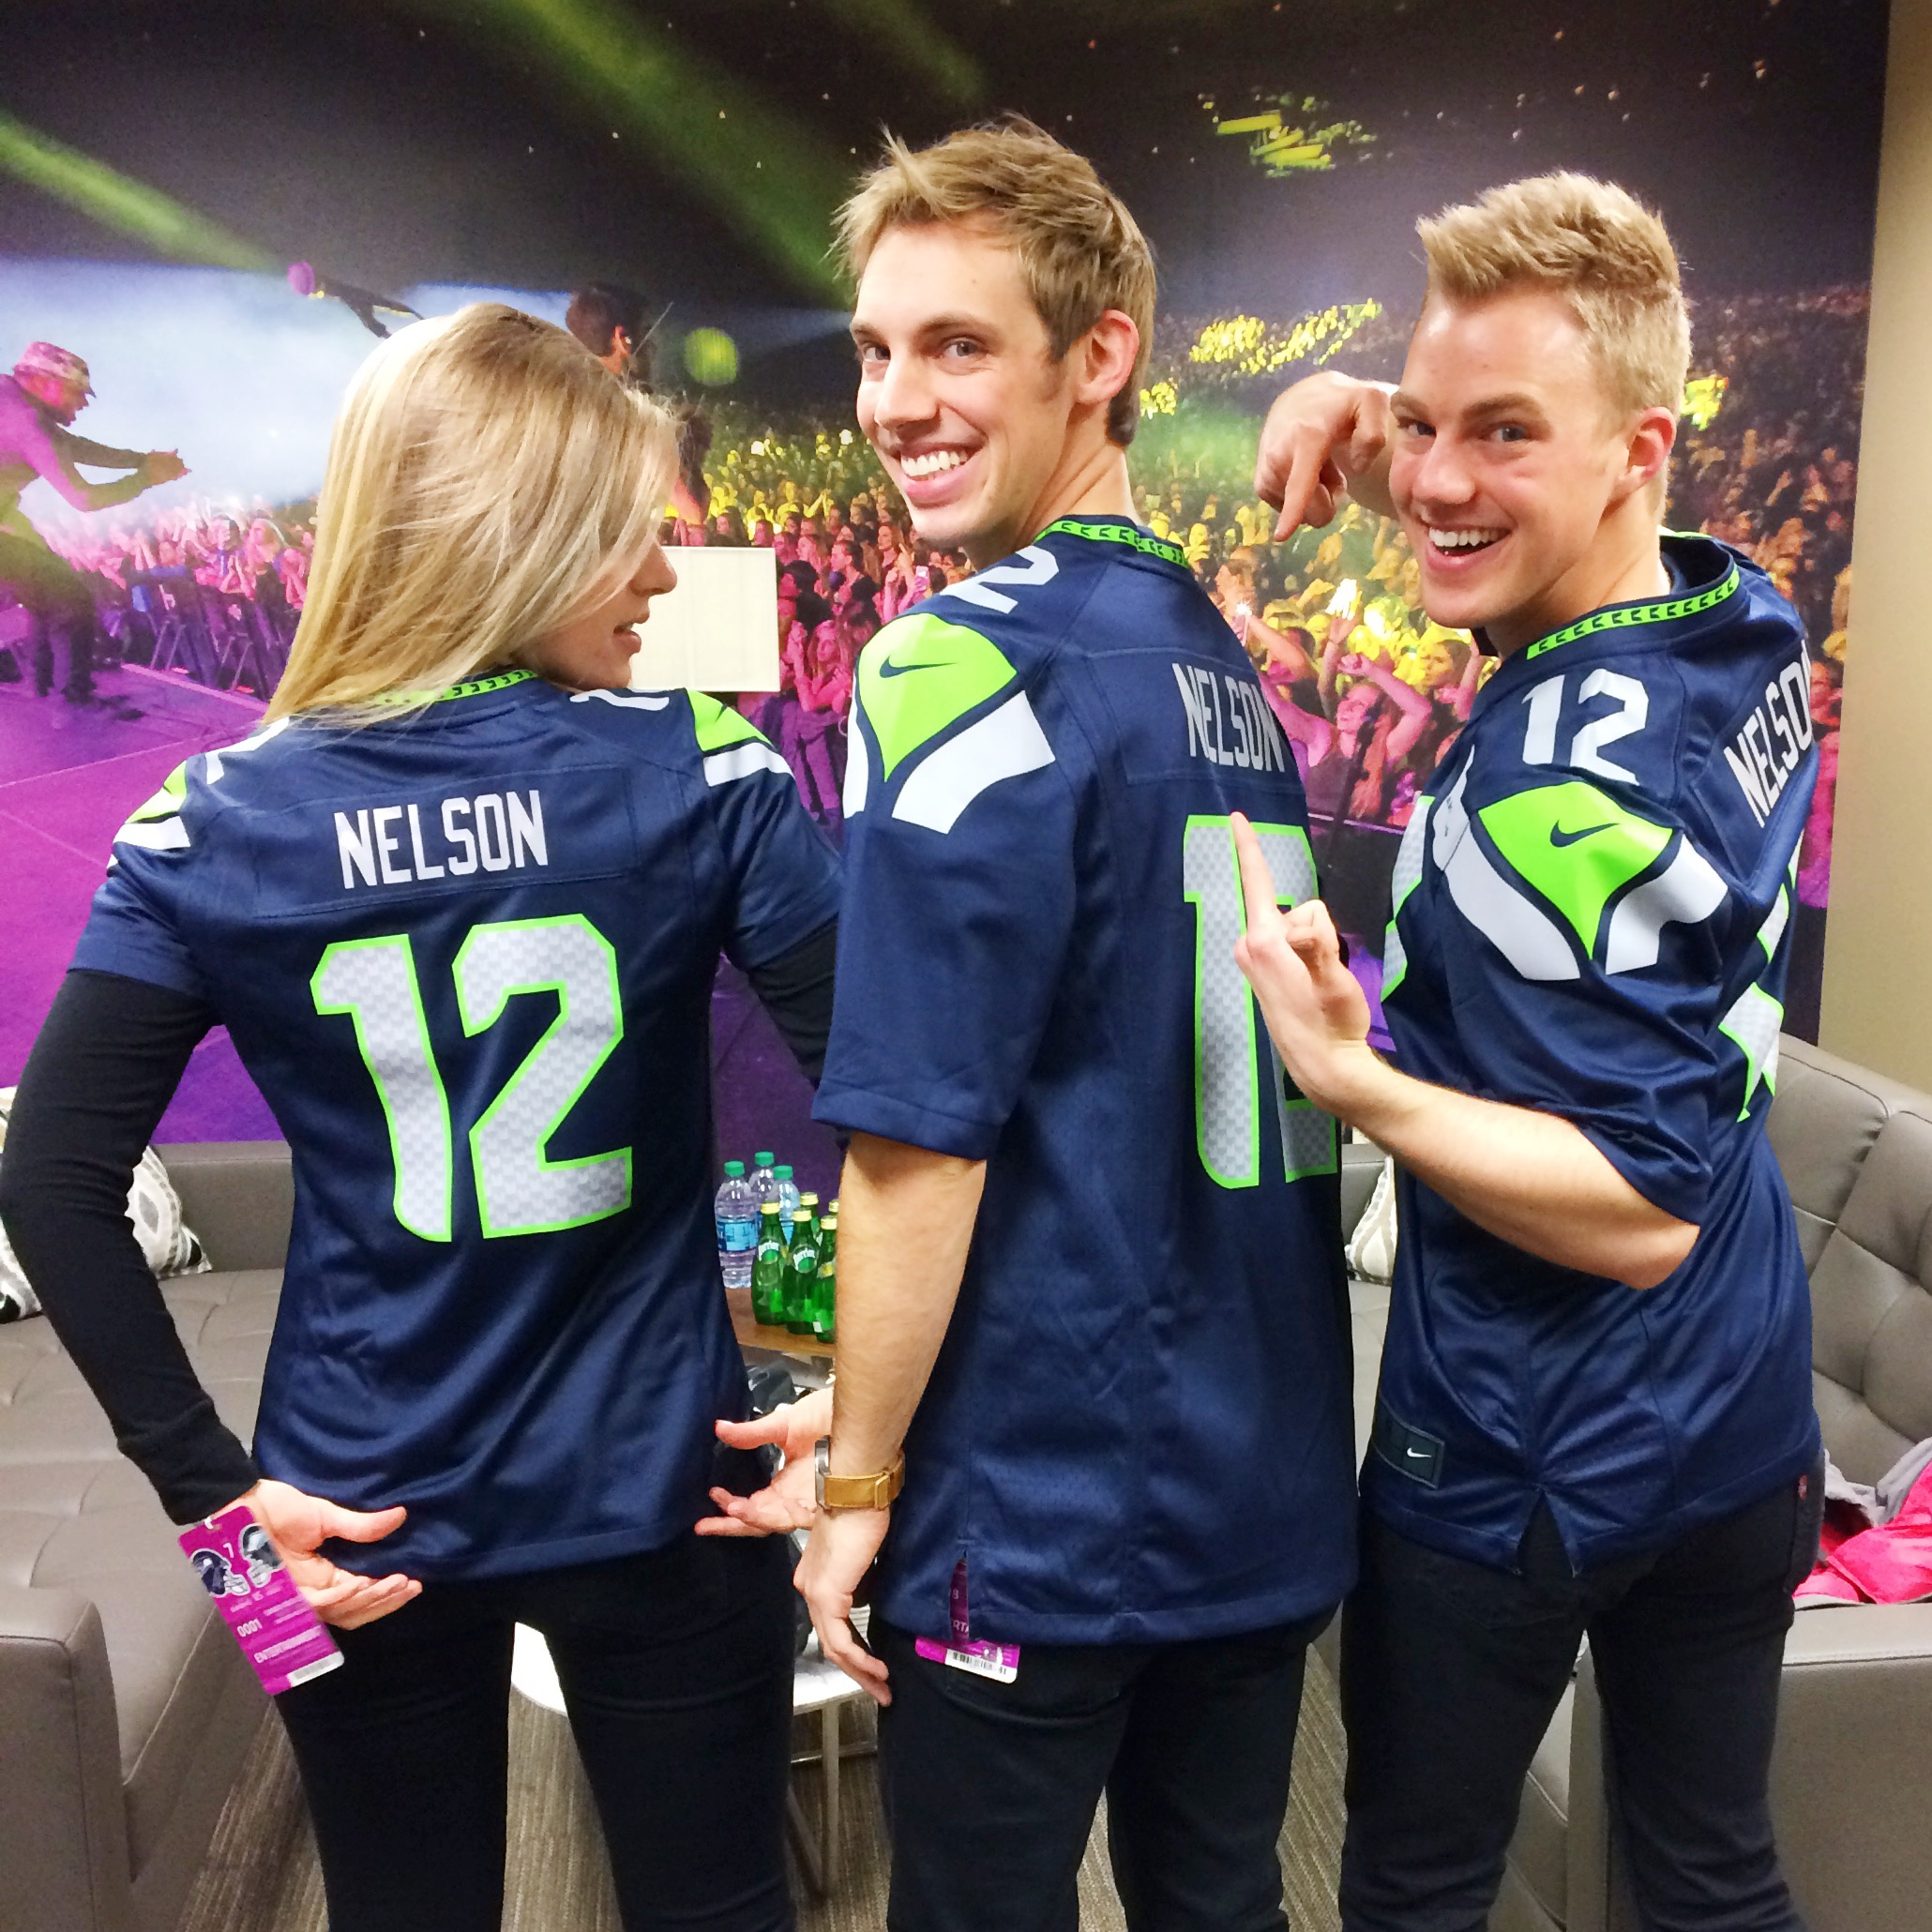 They provided us with our very own custom jerseys! Go Hawks!